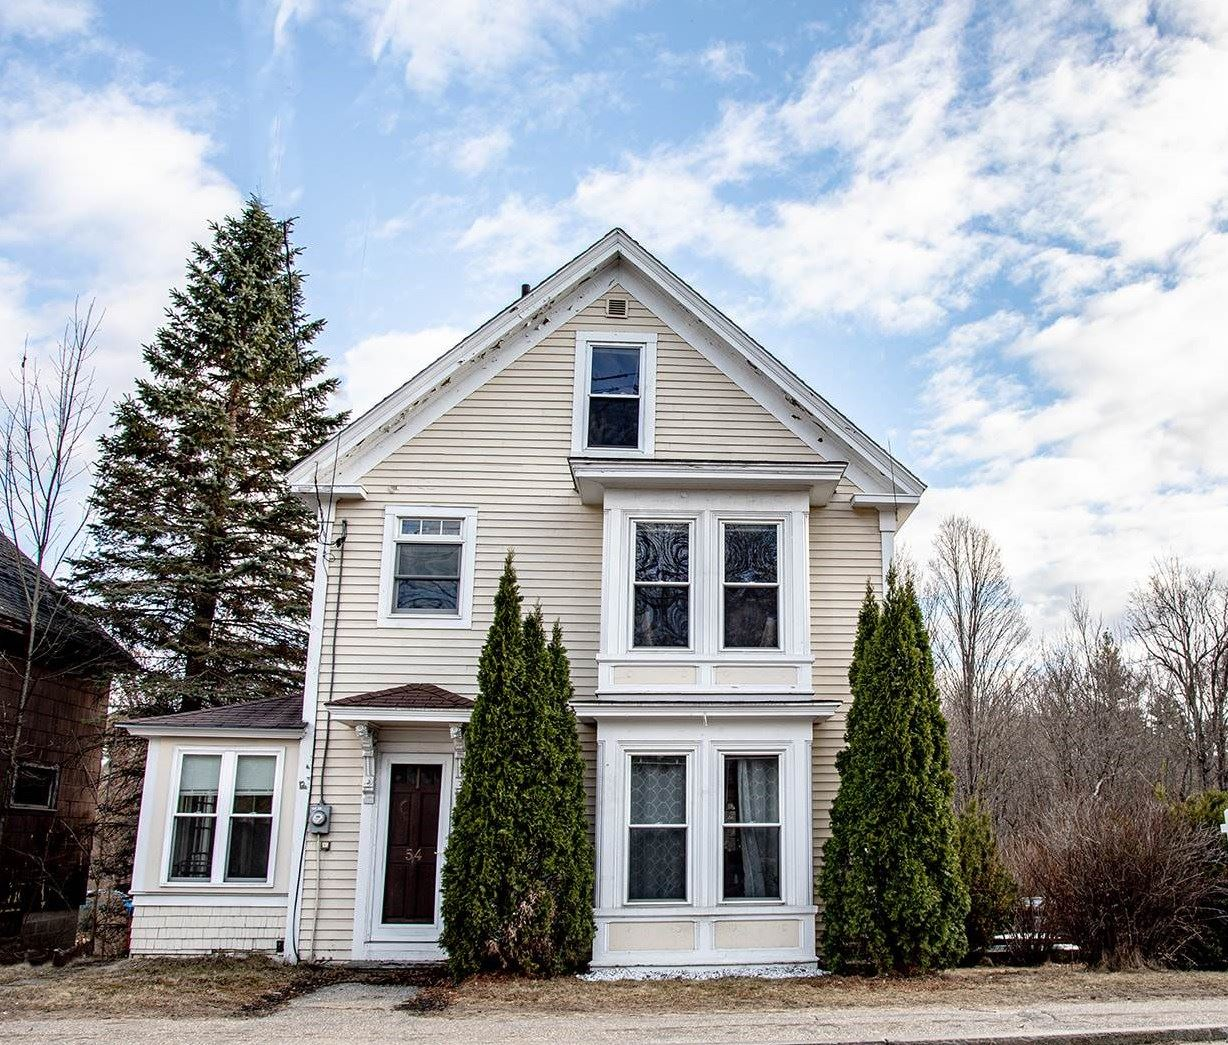 54 Central Street, Farmington, NH 03835 - MLS#: 4855345